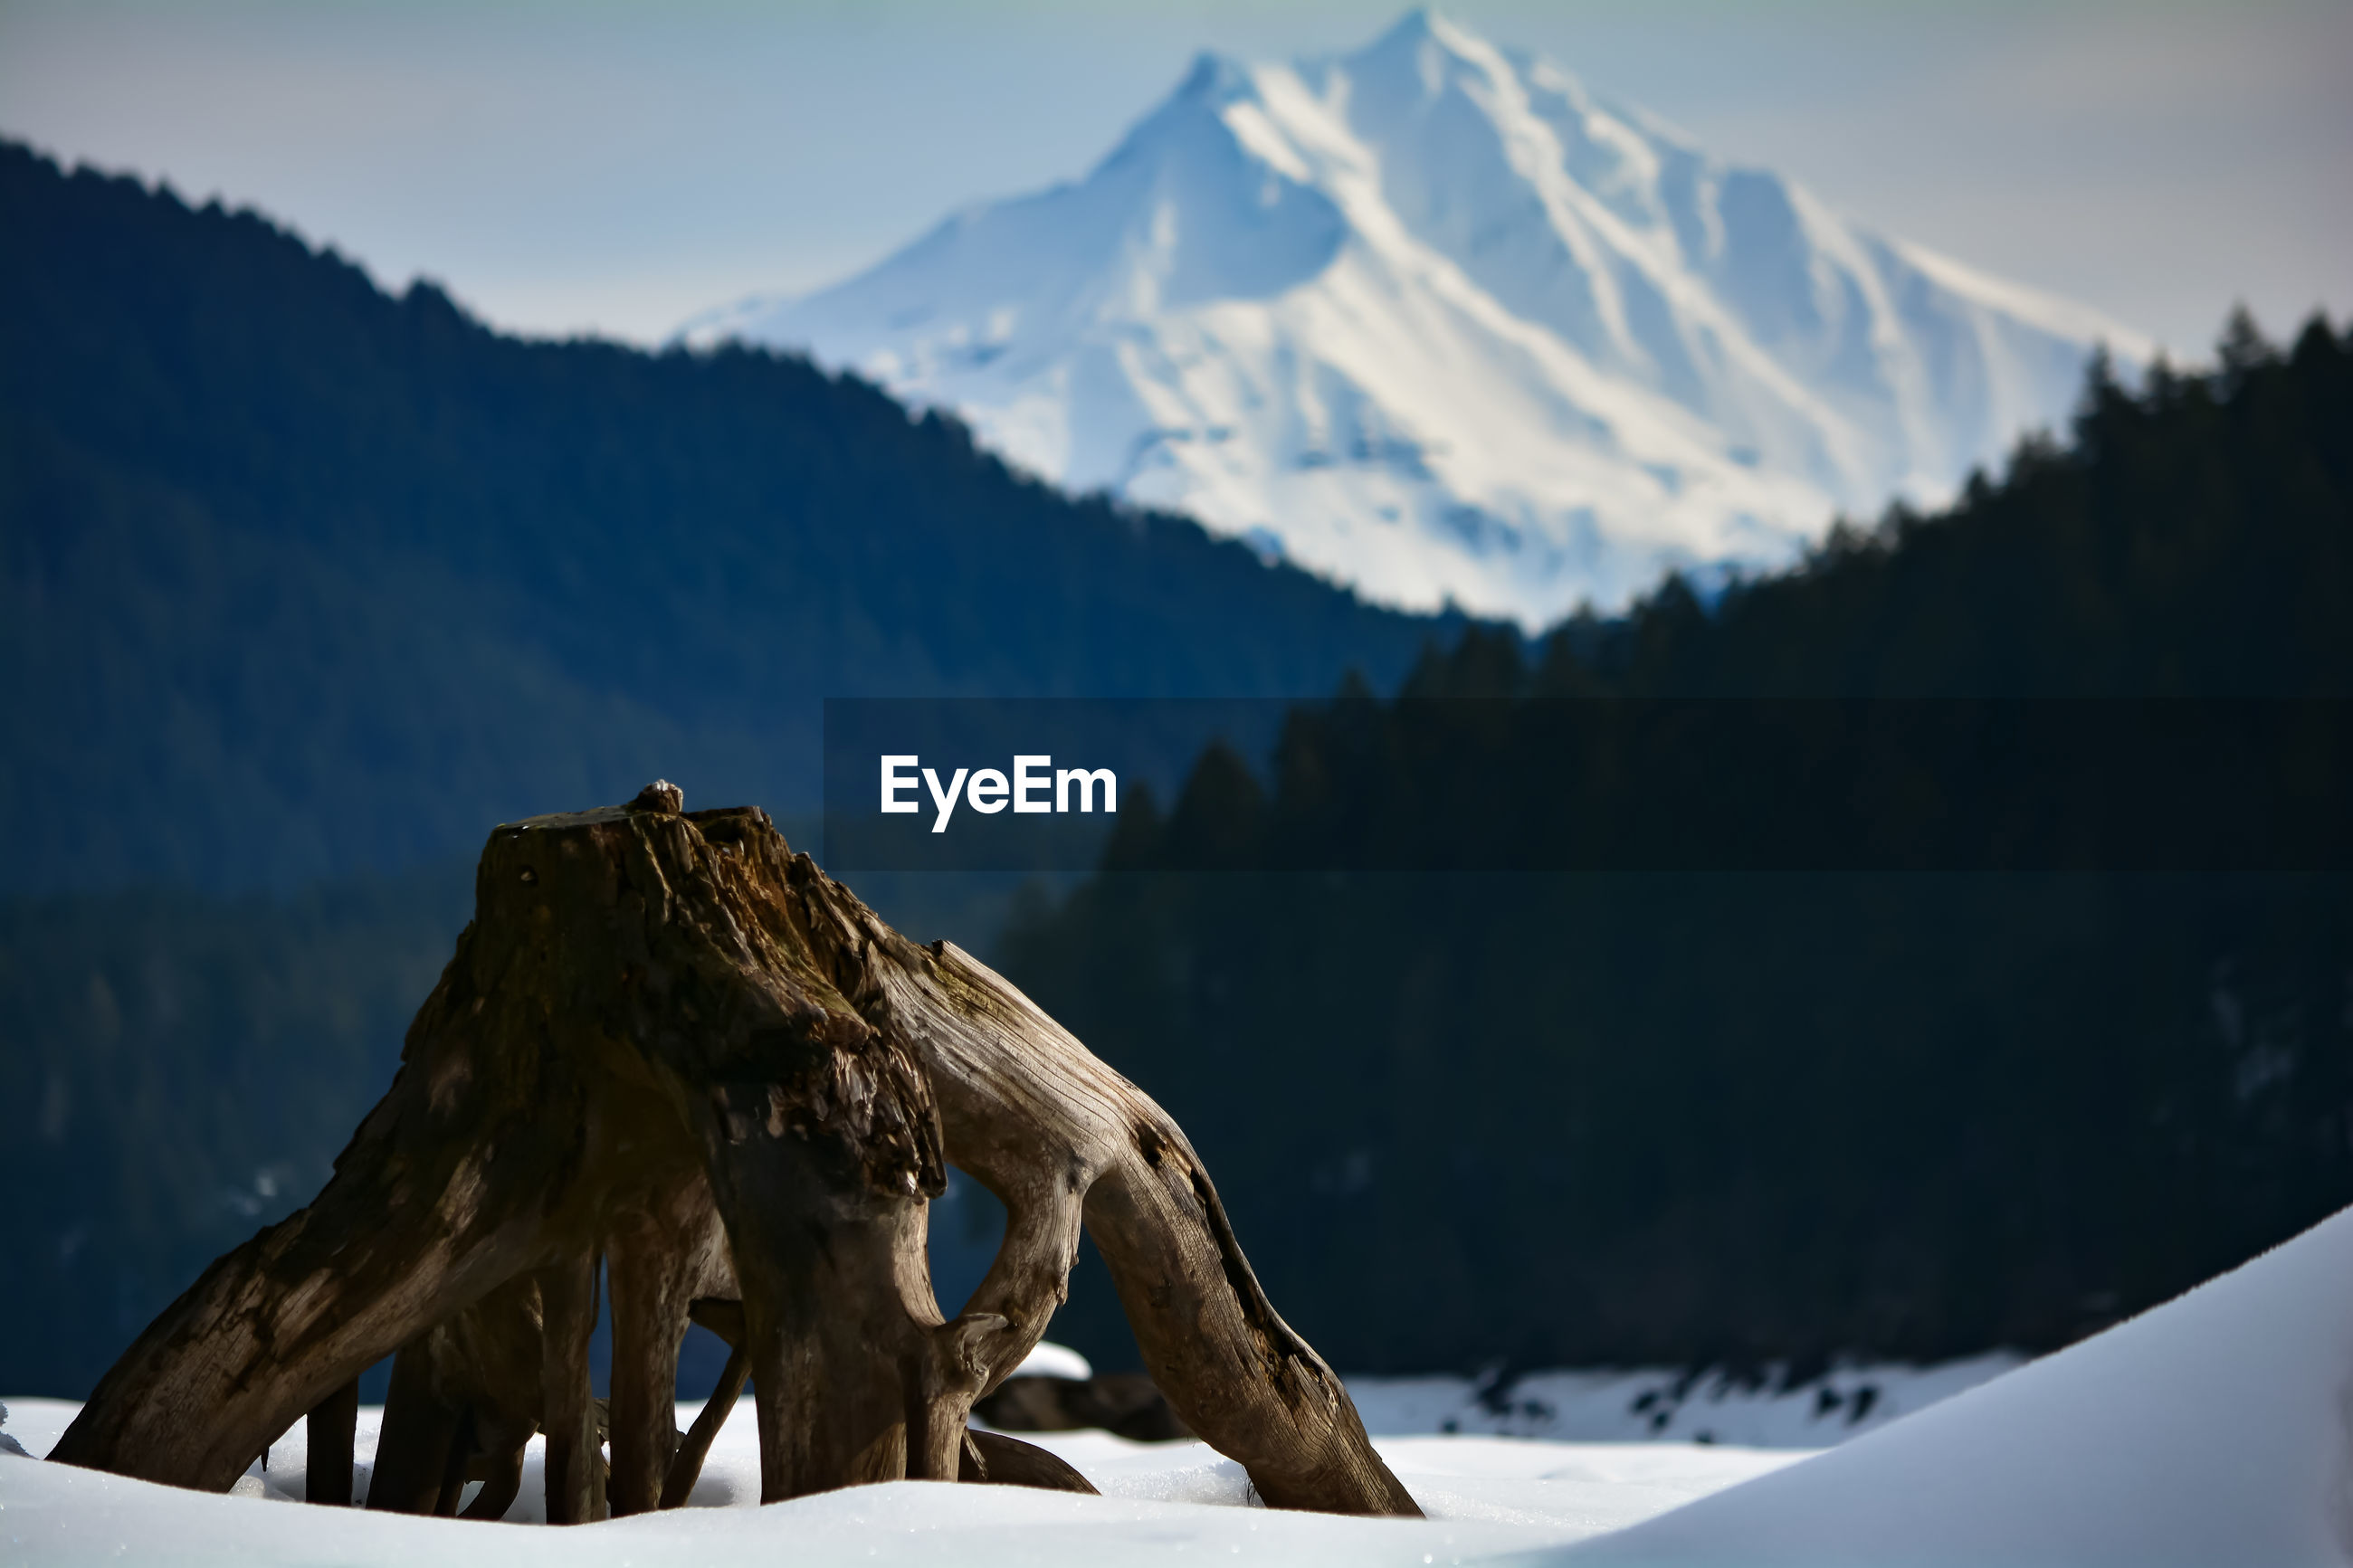 CLOSE-UP OF OWL AGAINST SNOWCAPPED MOUNTAINS